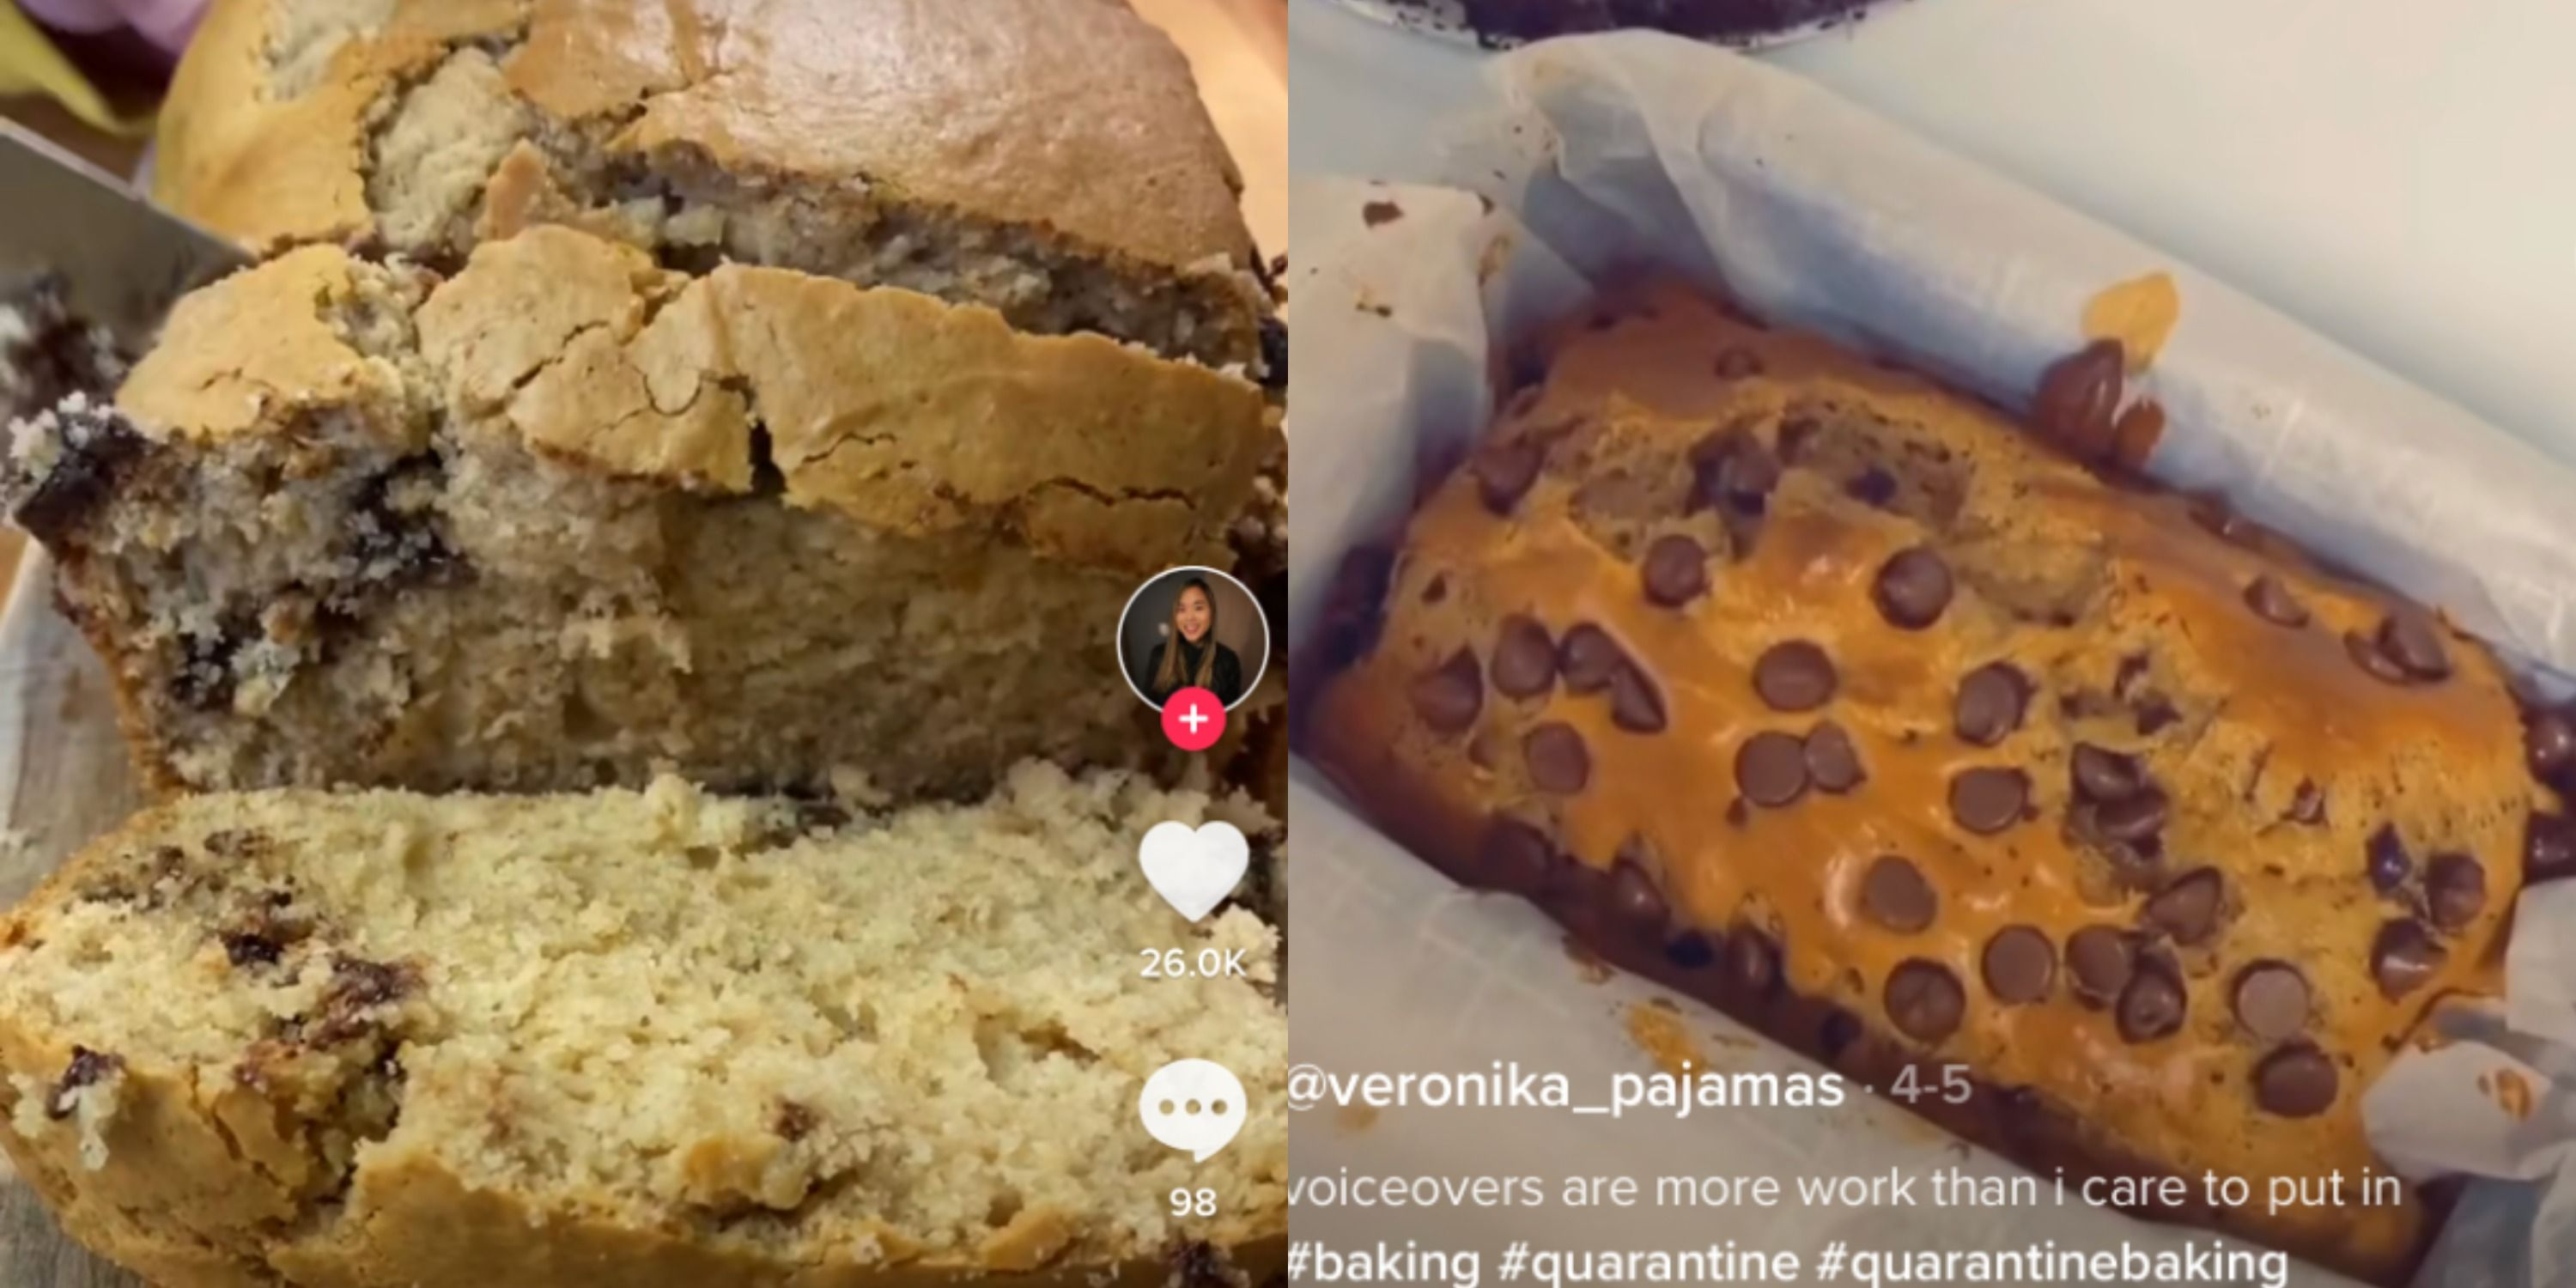 People On Tiktok Have Been Making Cookie Dough Bread